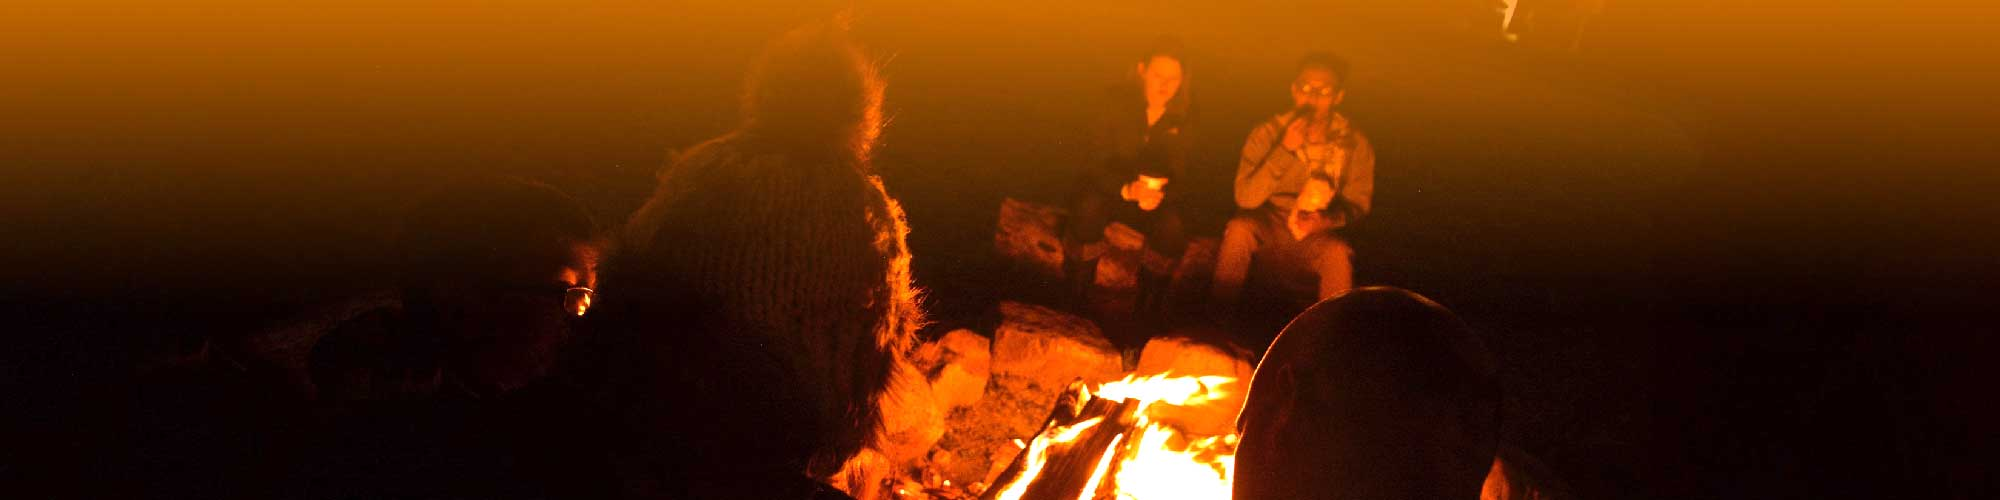 Private Events and Campfire Rentals at Richardson Adventure Farm in Northern Illinois